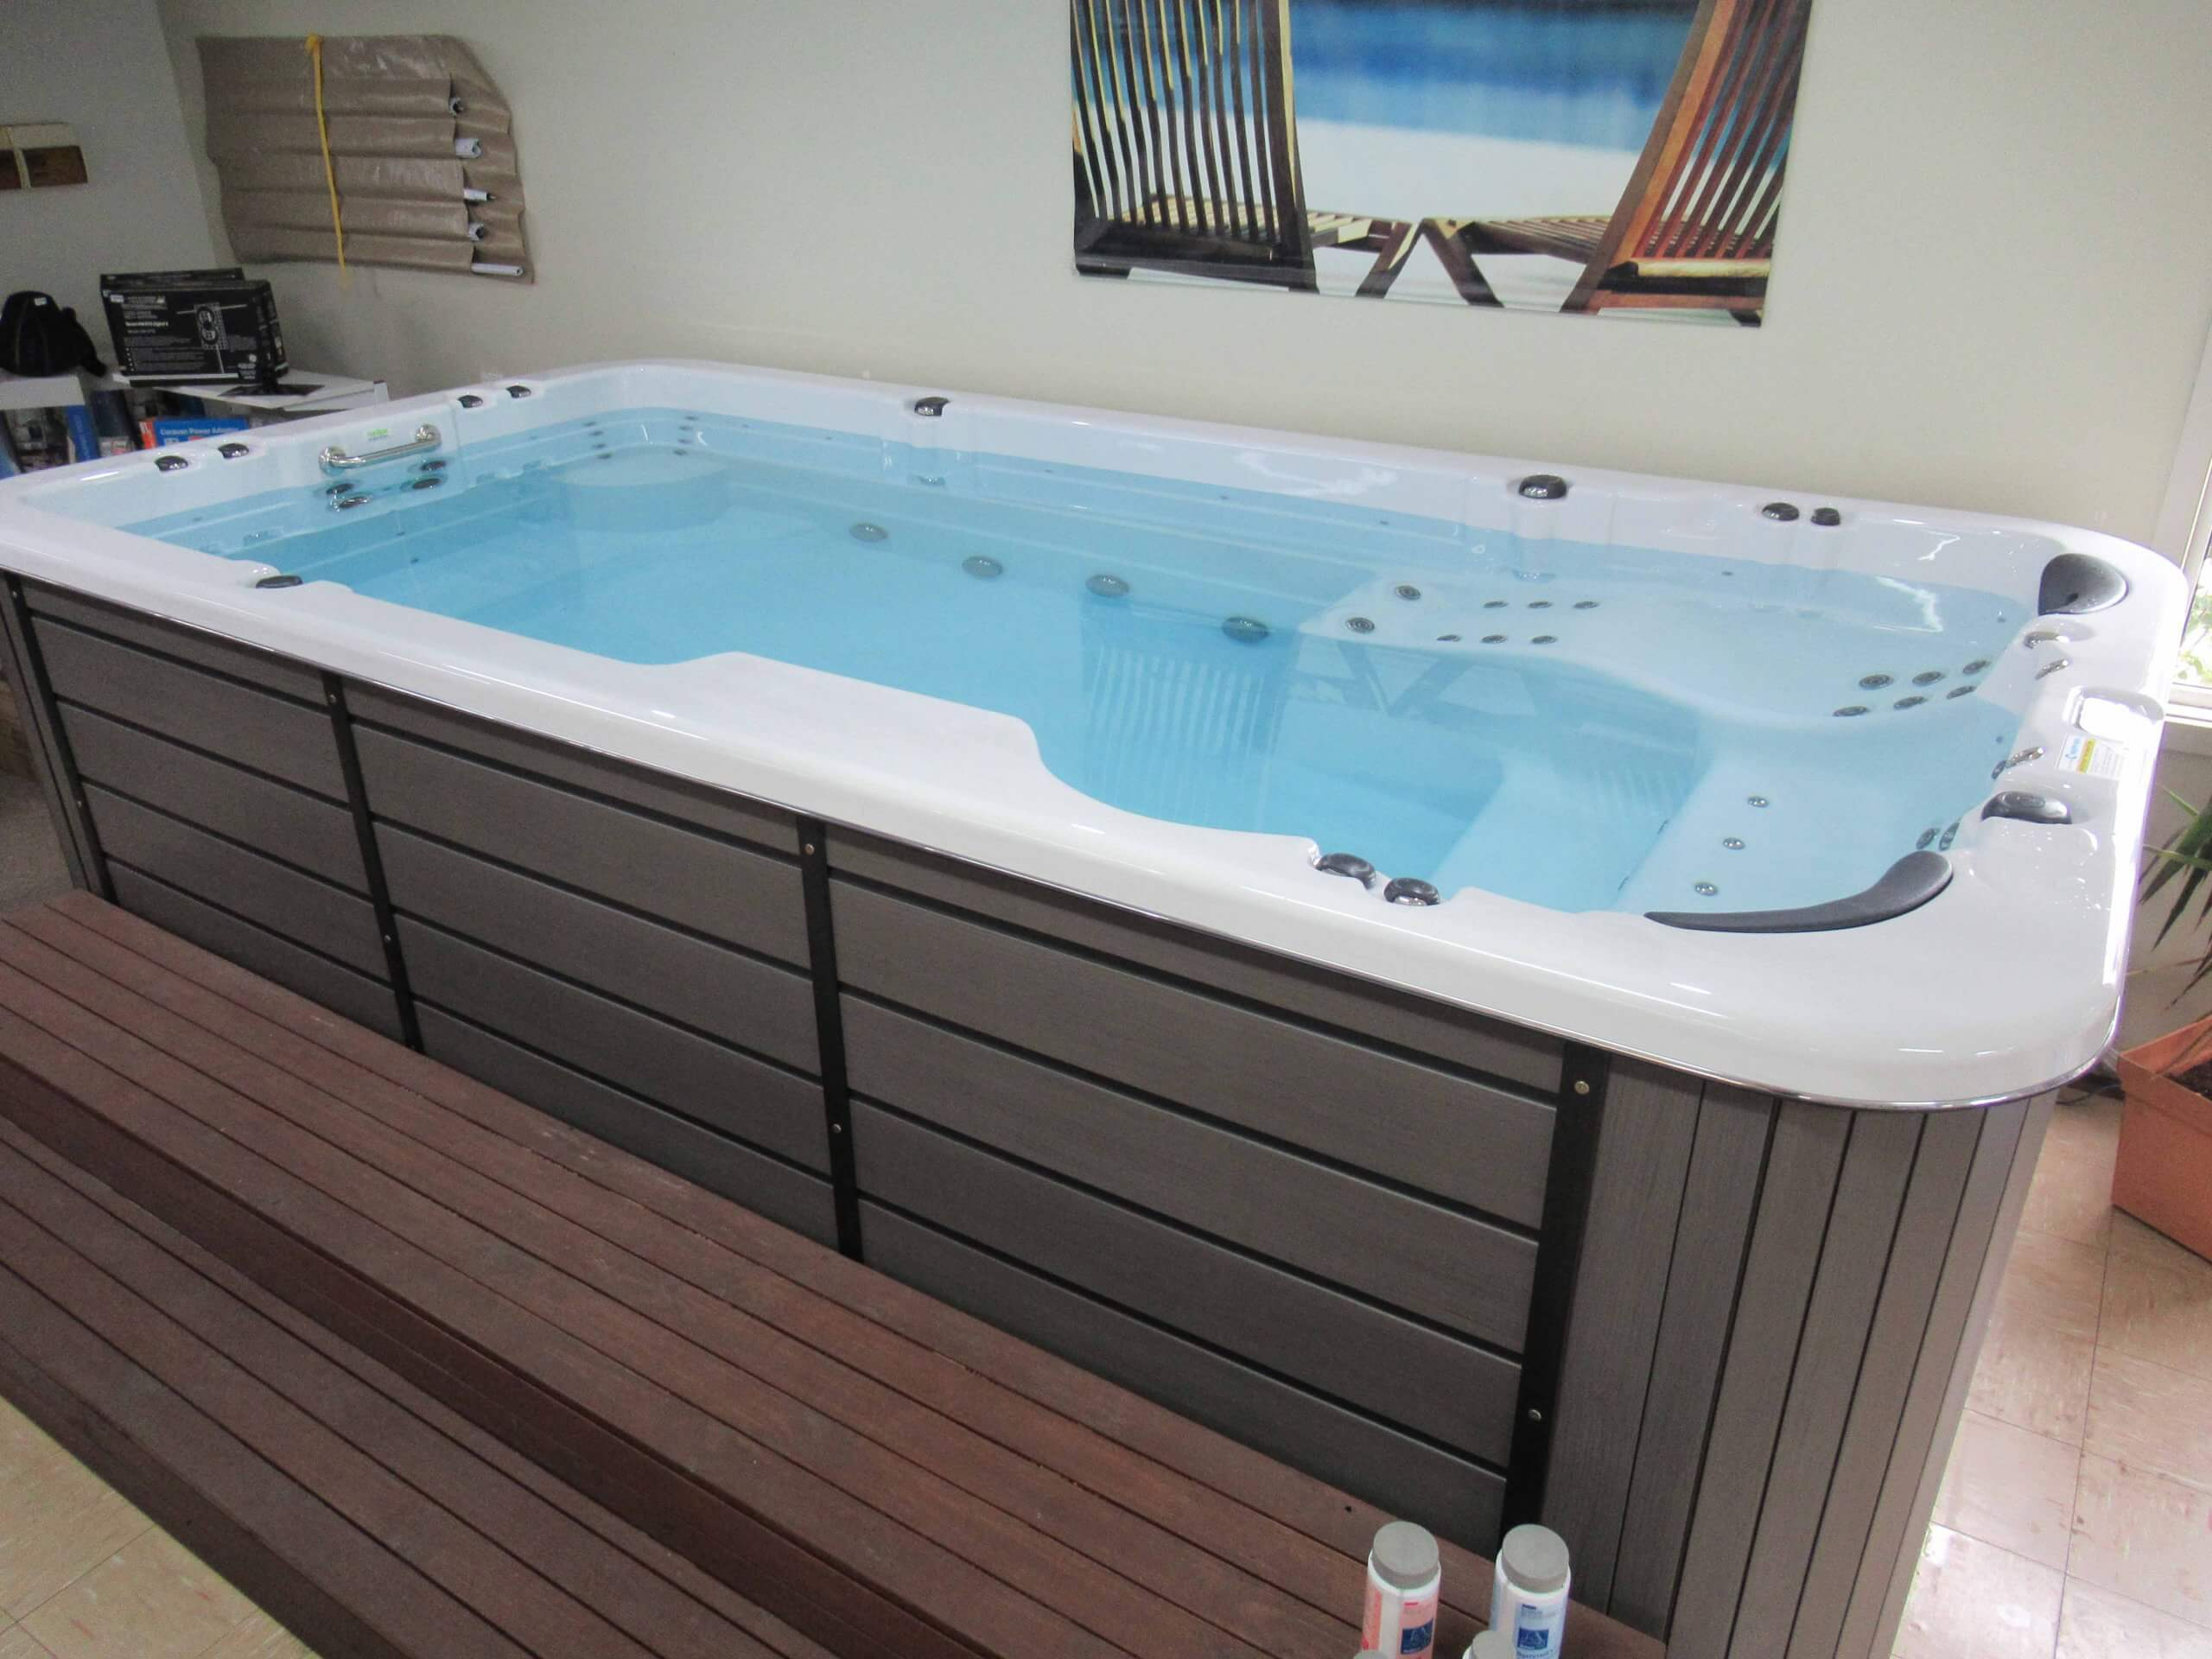 Donehues Leisure New Mt Gambier Sapphire Spa Swimspa My personal Extreme trainer 347 12